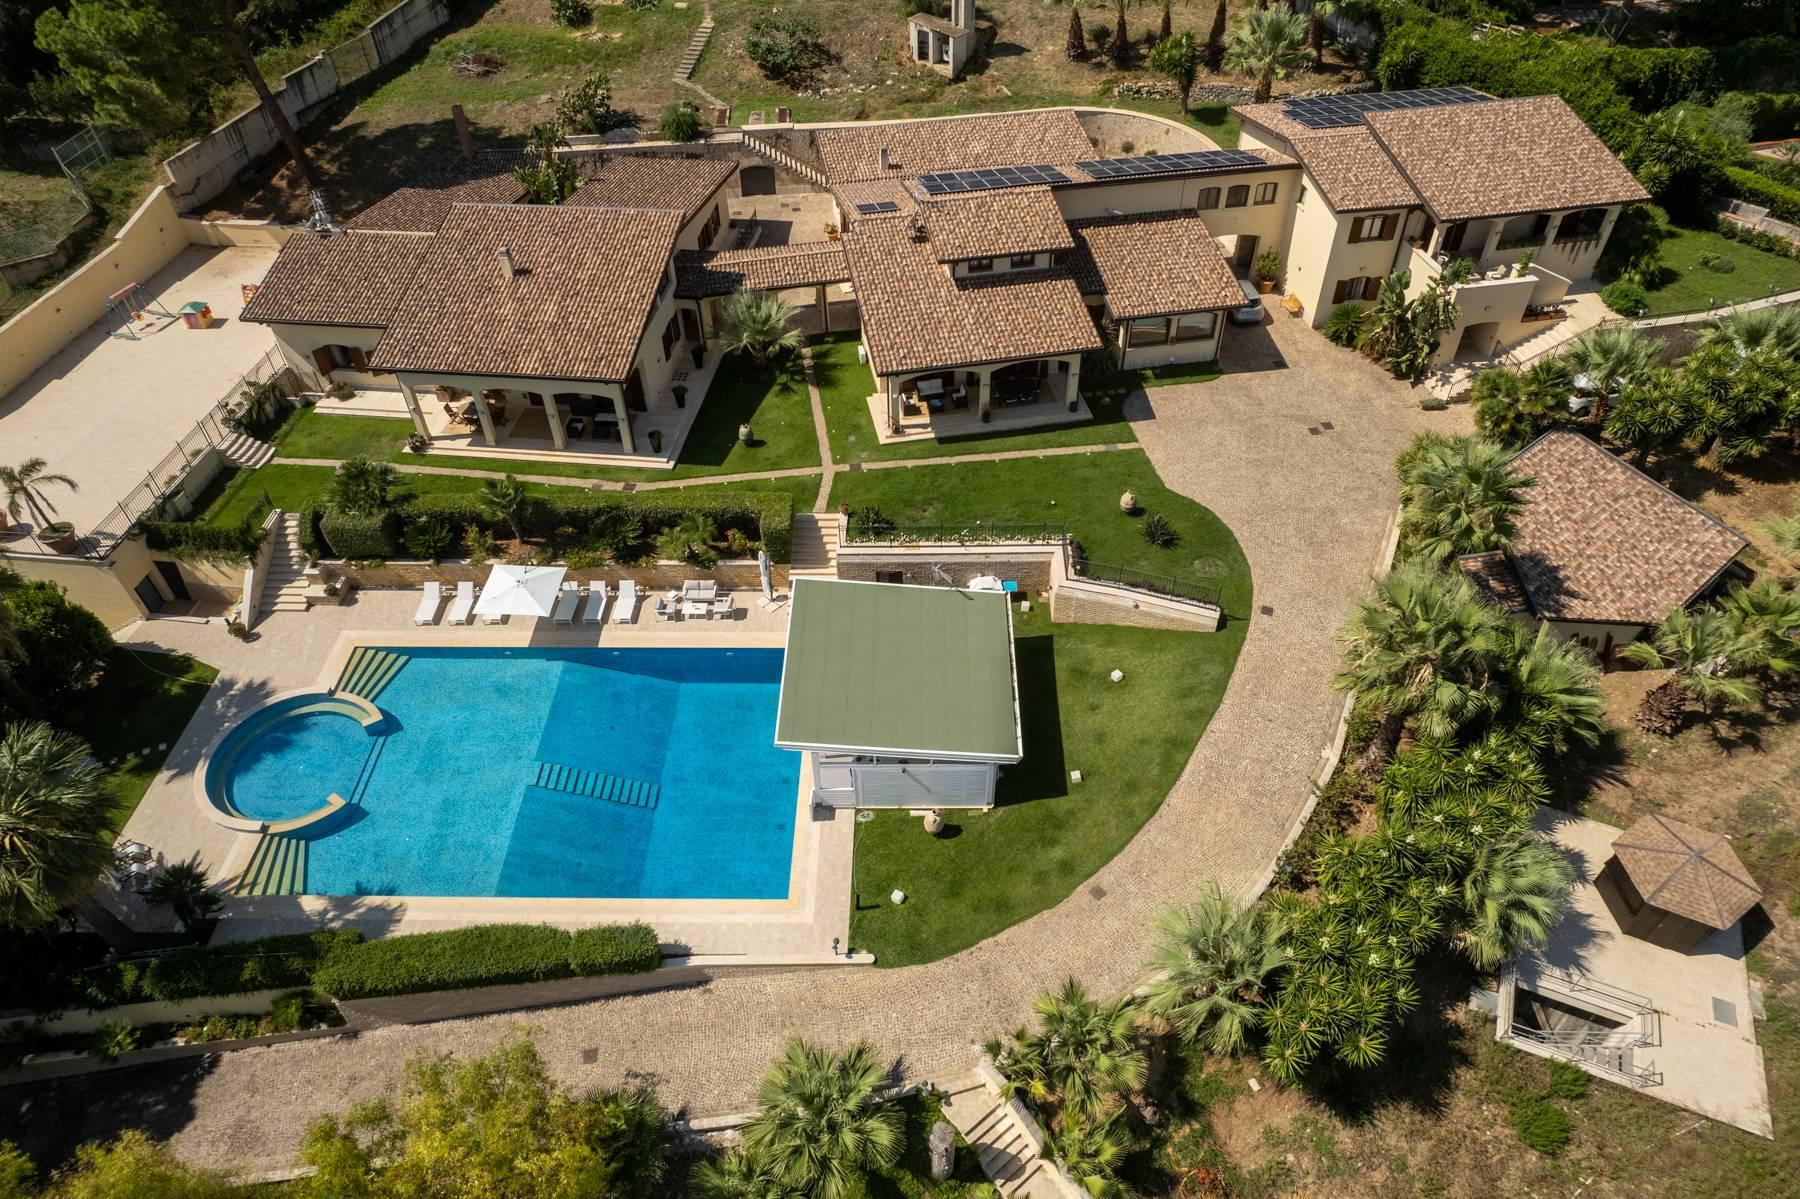 Luxurious Villa in Monreale with breathtaking views overlooking the Gulf of Palermo - 5